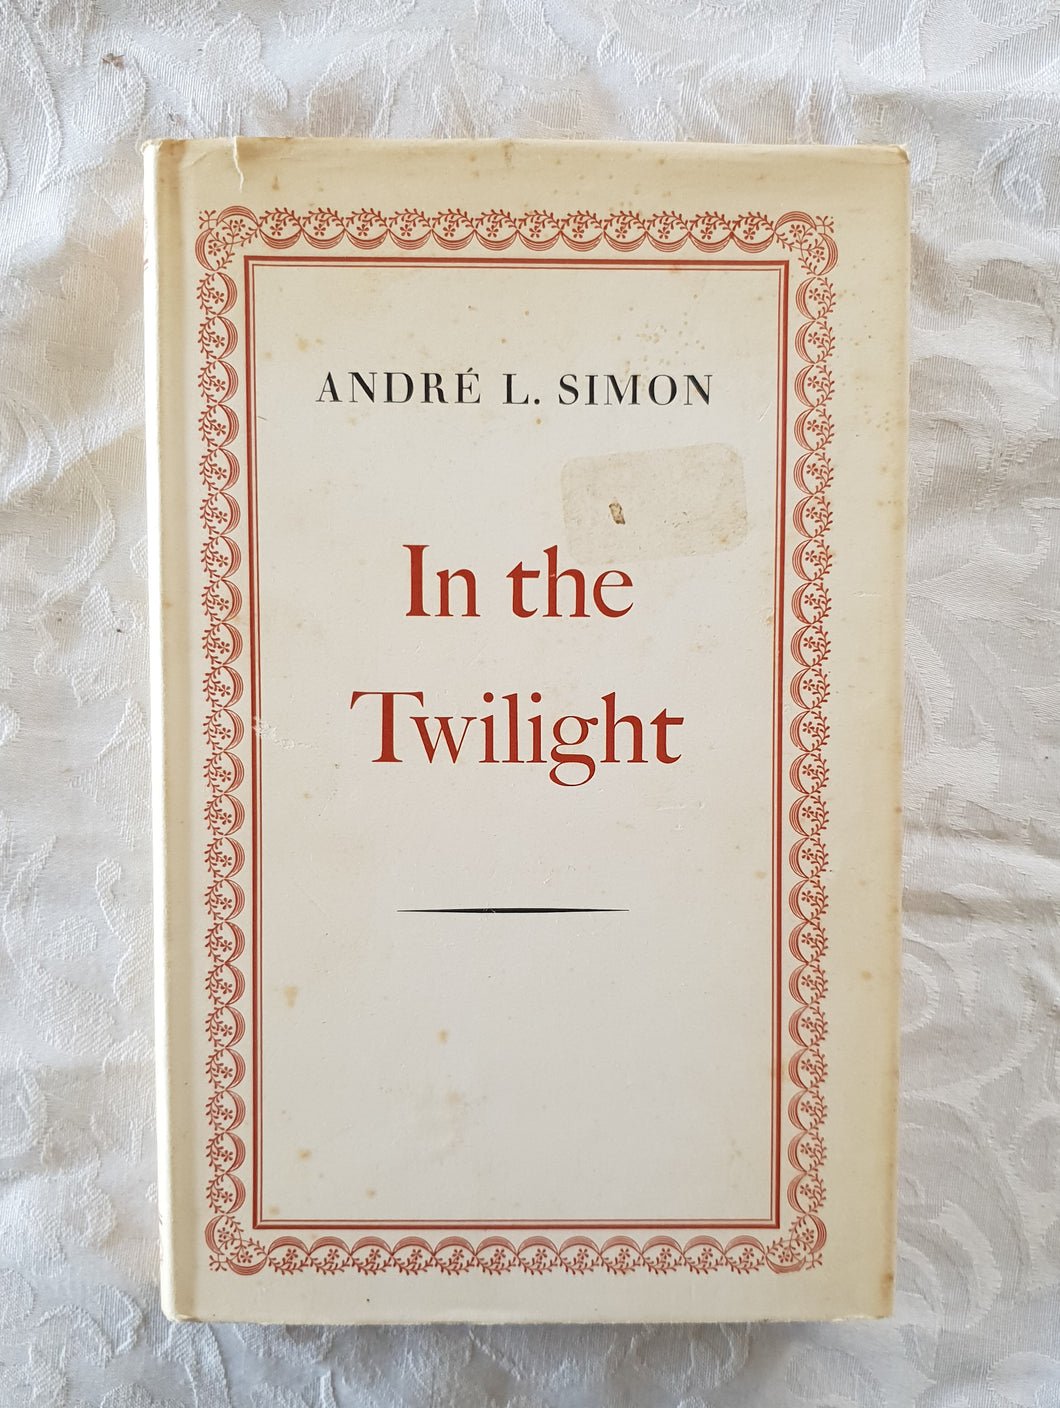 In The Twilight by Andre L. Simon